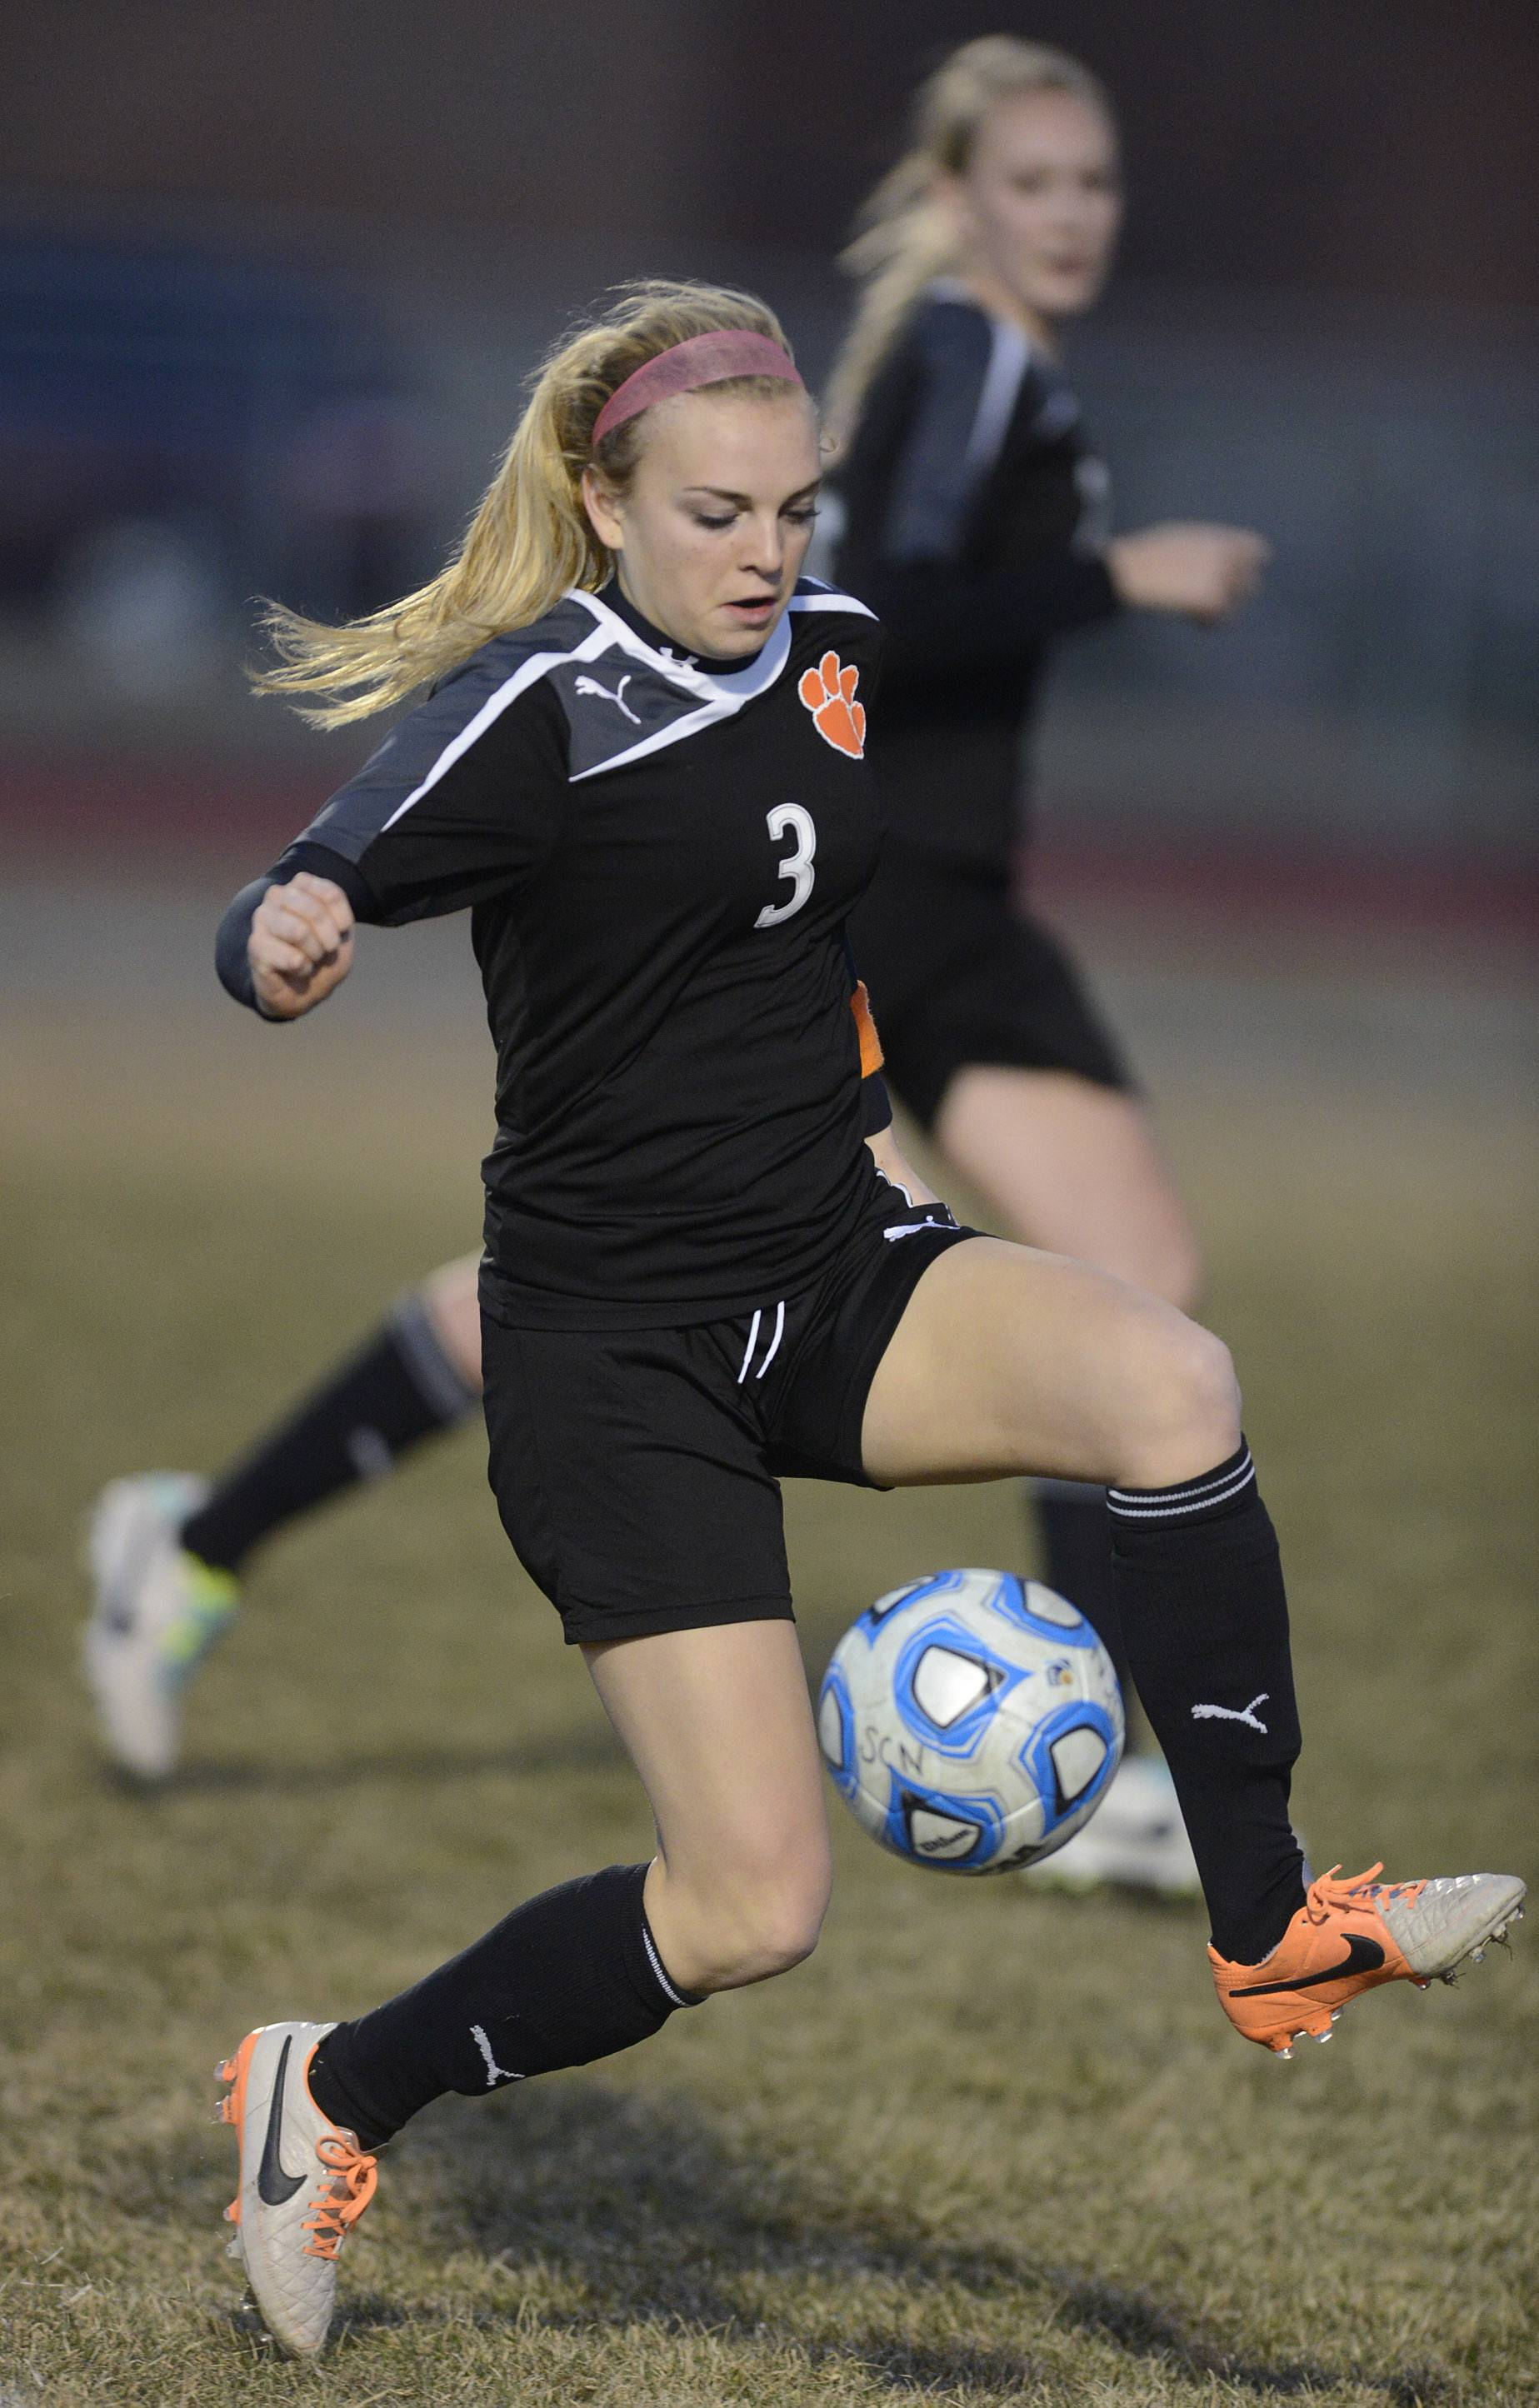 Wheaton Warrenville South's Ava Fickle vs. St. Charles North in the first half on Thursday, April 10.